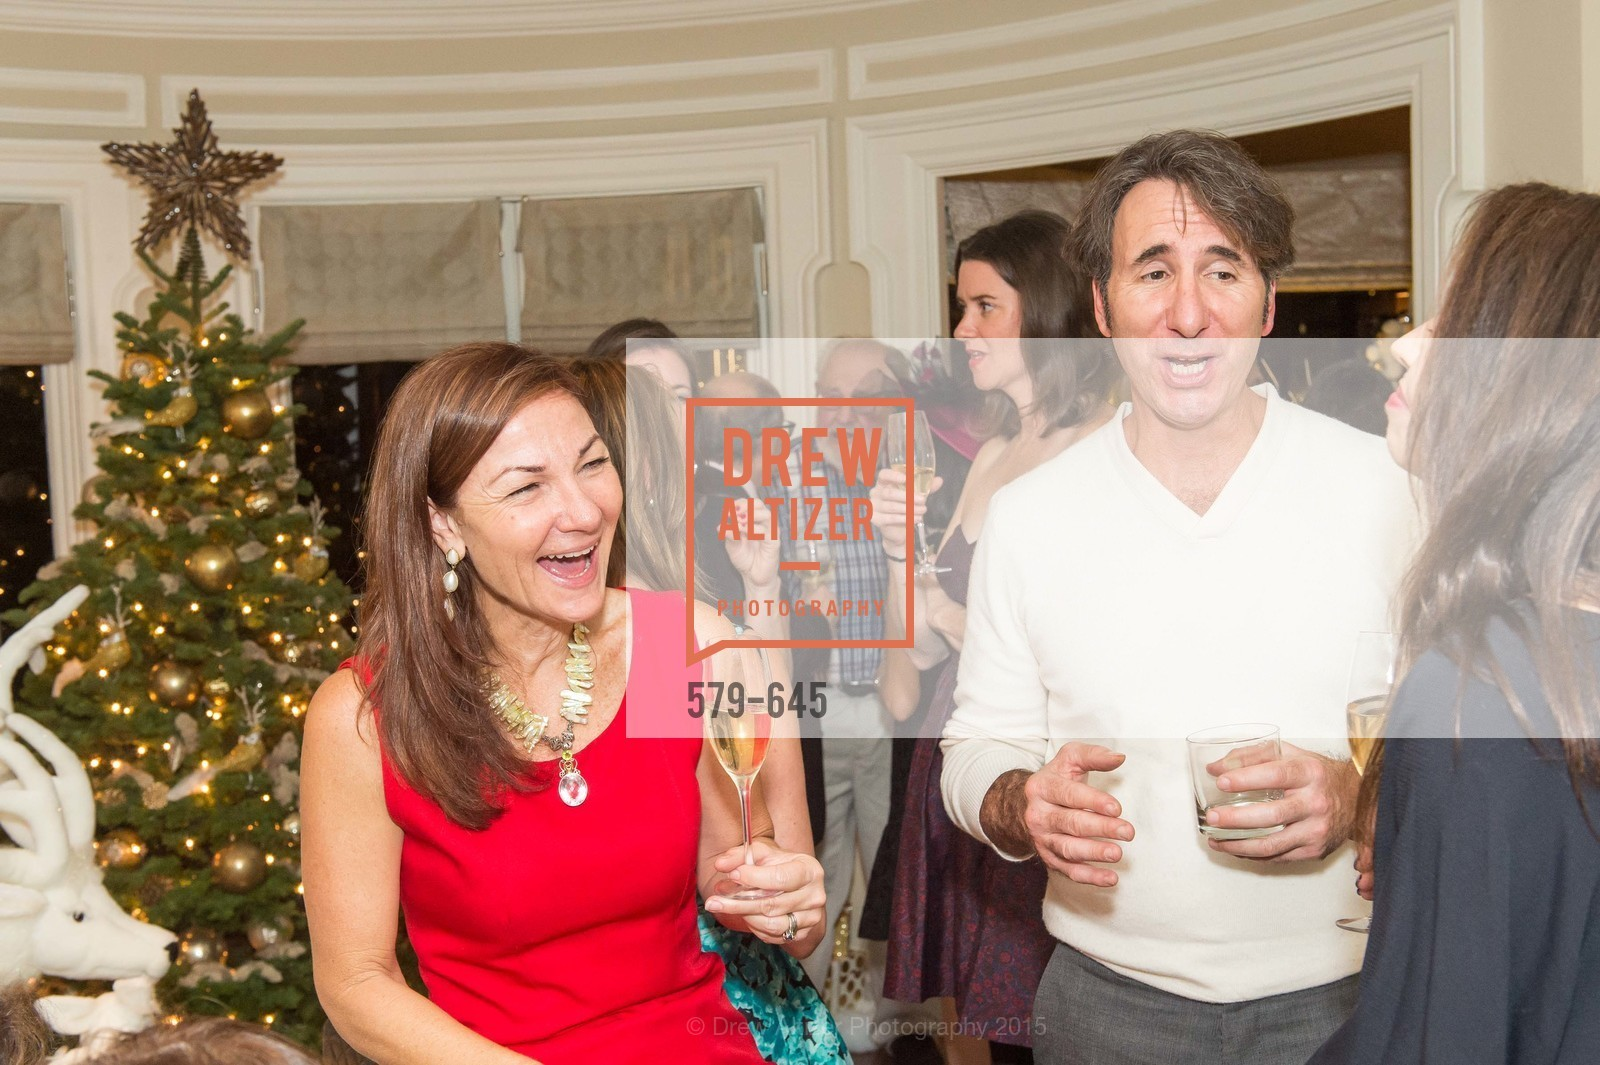 Susie Damilano, Mark Rodighiero, Atherton Holiday Party, Private Residence, December 12th, 2015,Drew Altizer, Drew Altizer Photography, full-service agency, private events, San Francisco photographer, photographer california